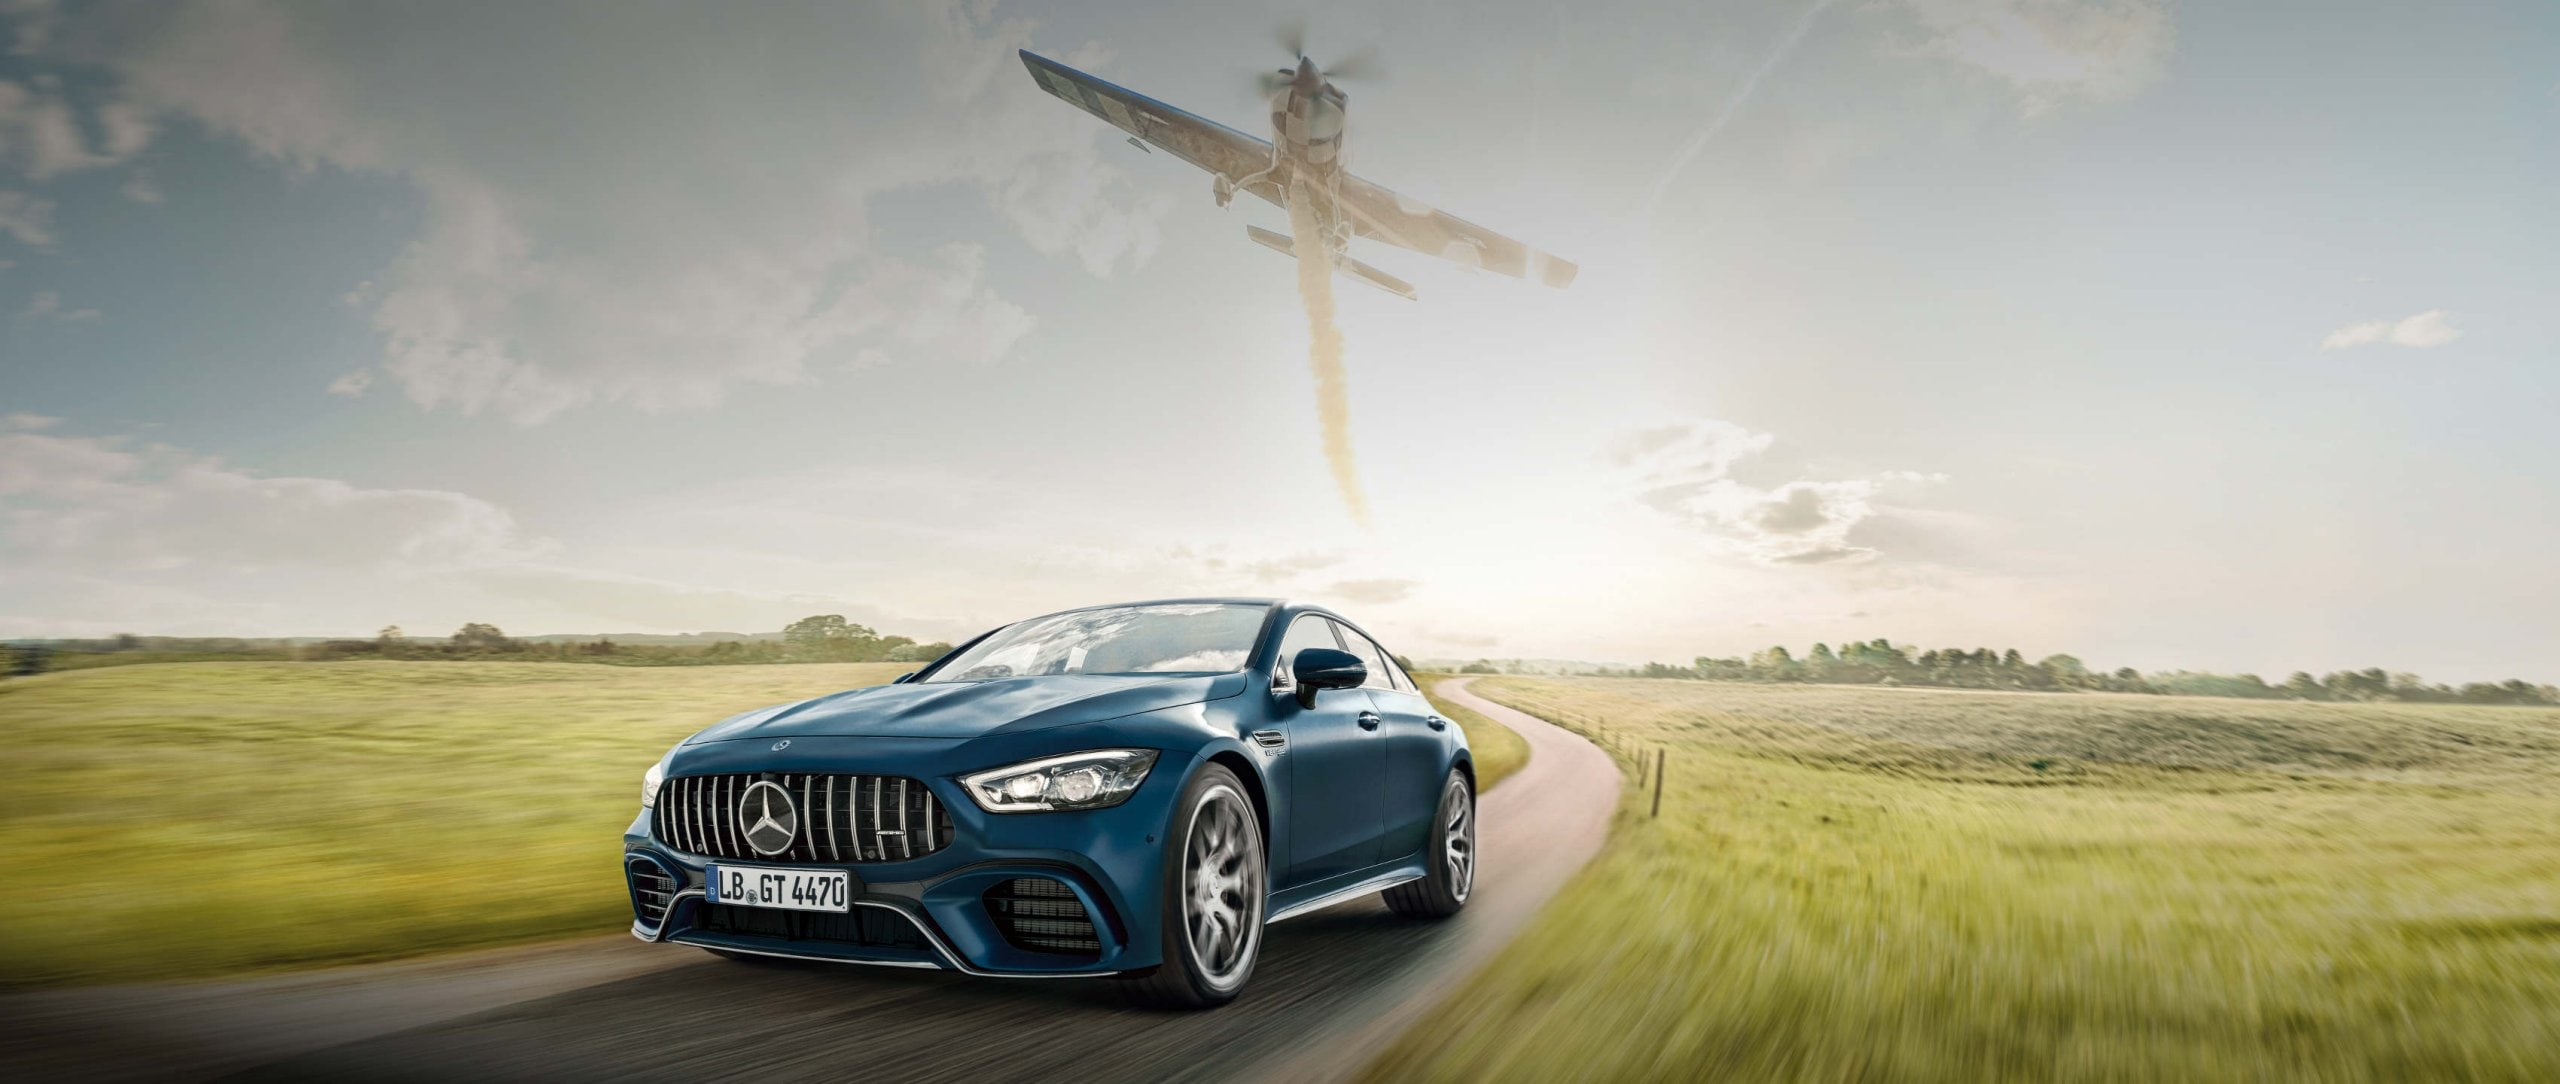 Mercedes-Benz: Mercedes-AMG Magazine – 24 hours with an Air Race world champion. Matthias Dolderer with 300 PS in the air and 639 PS on the ground.